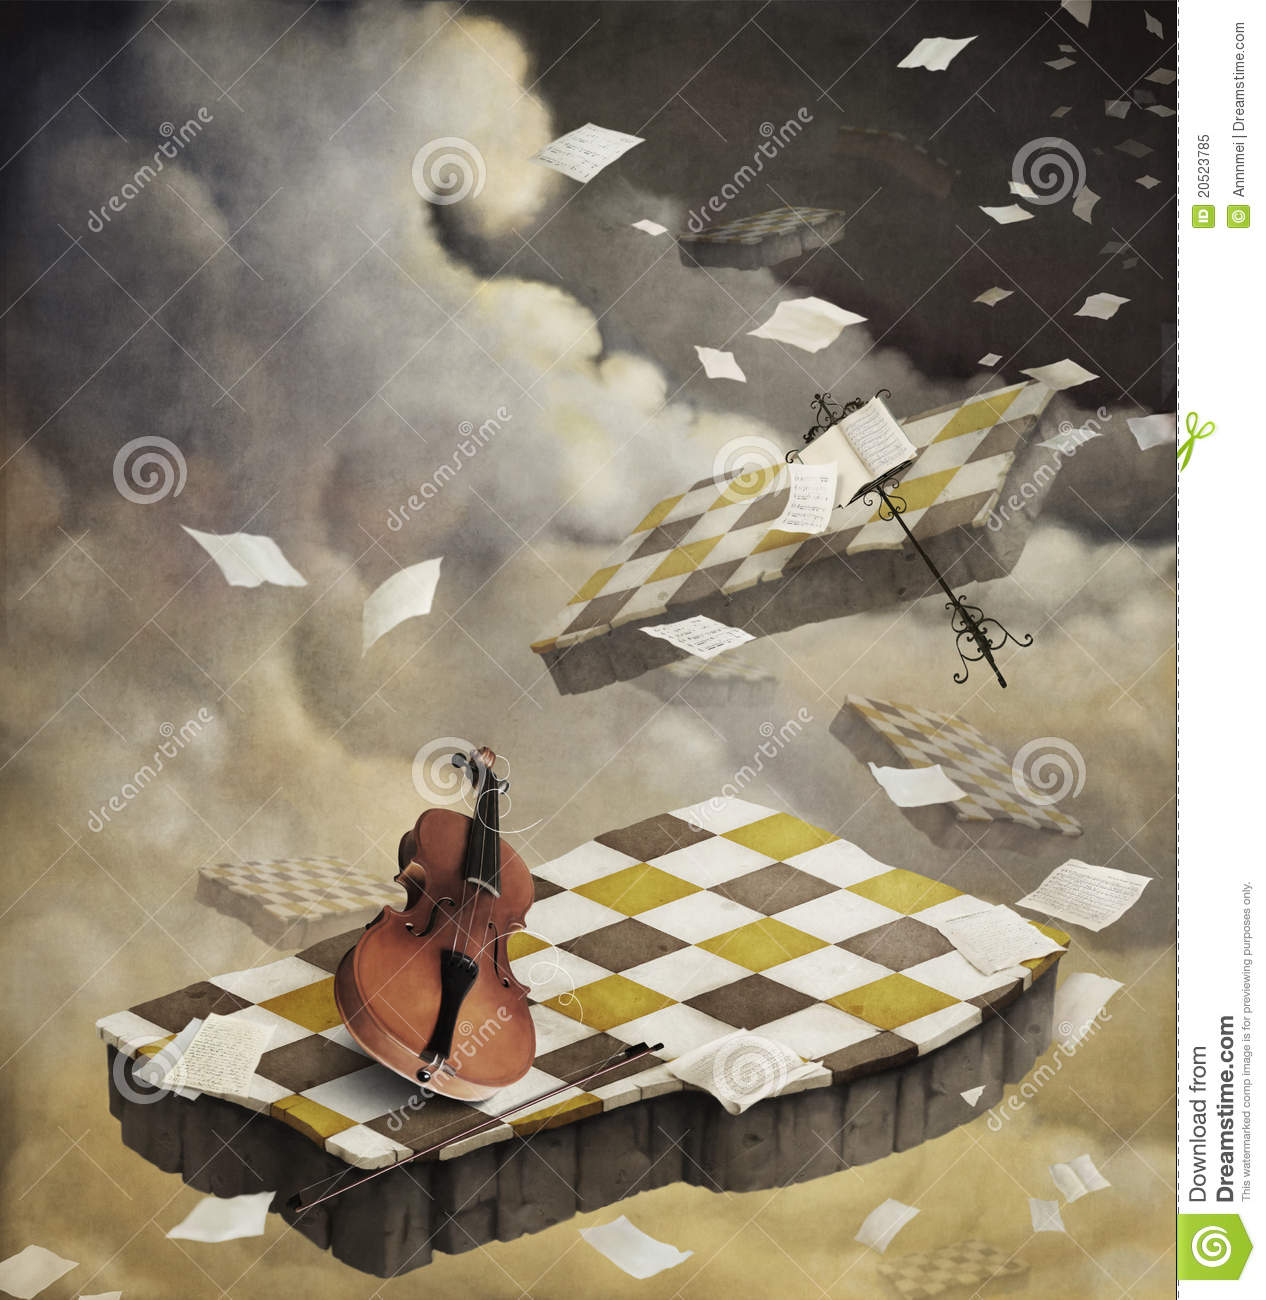 Background music with violin and sheet music.